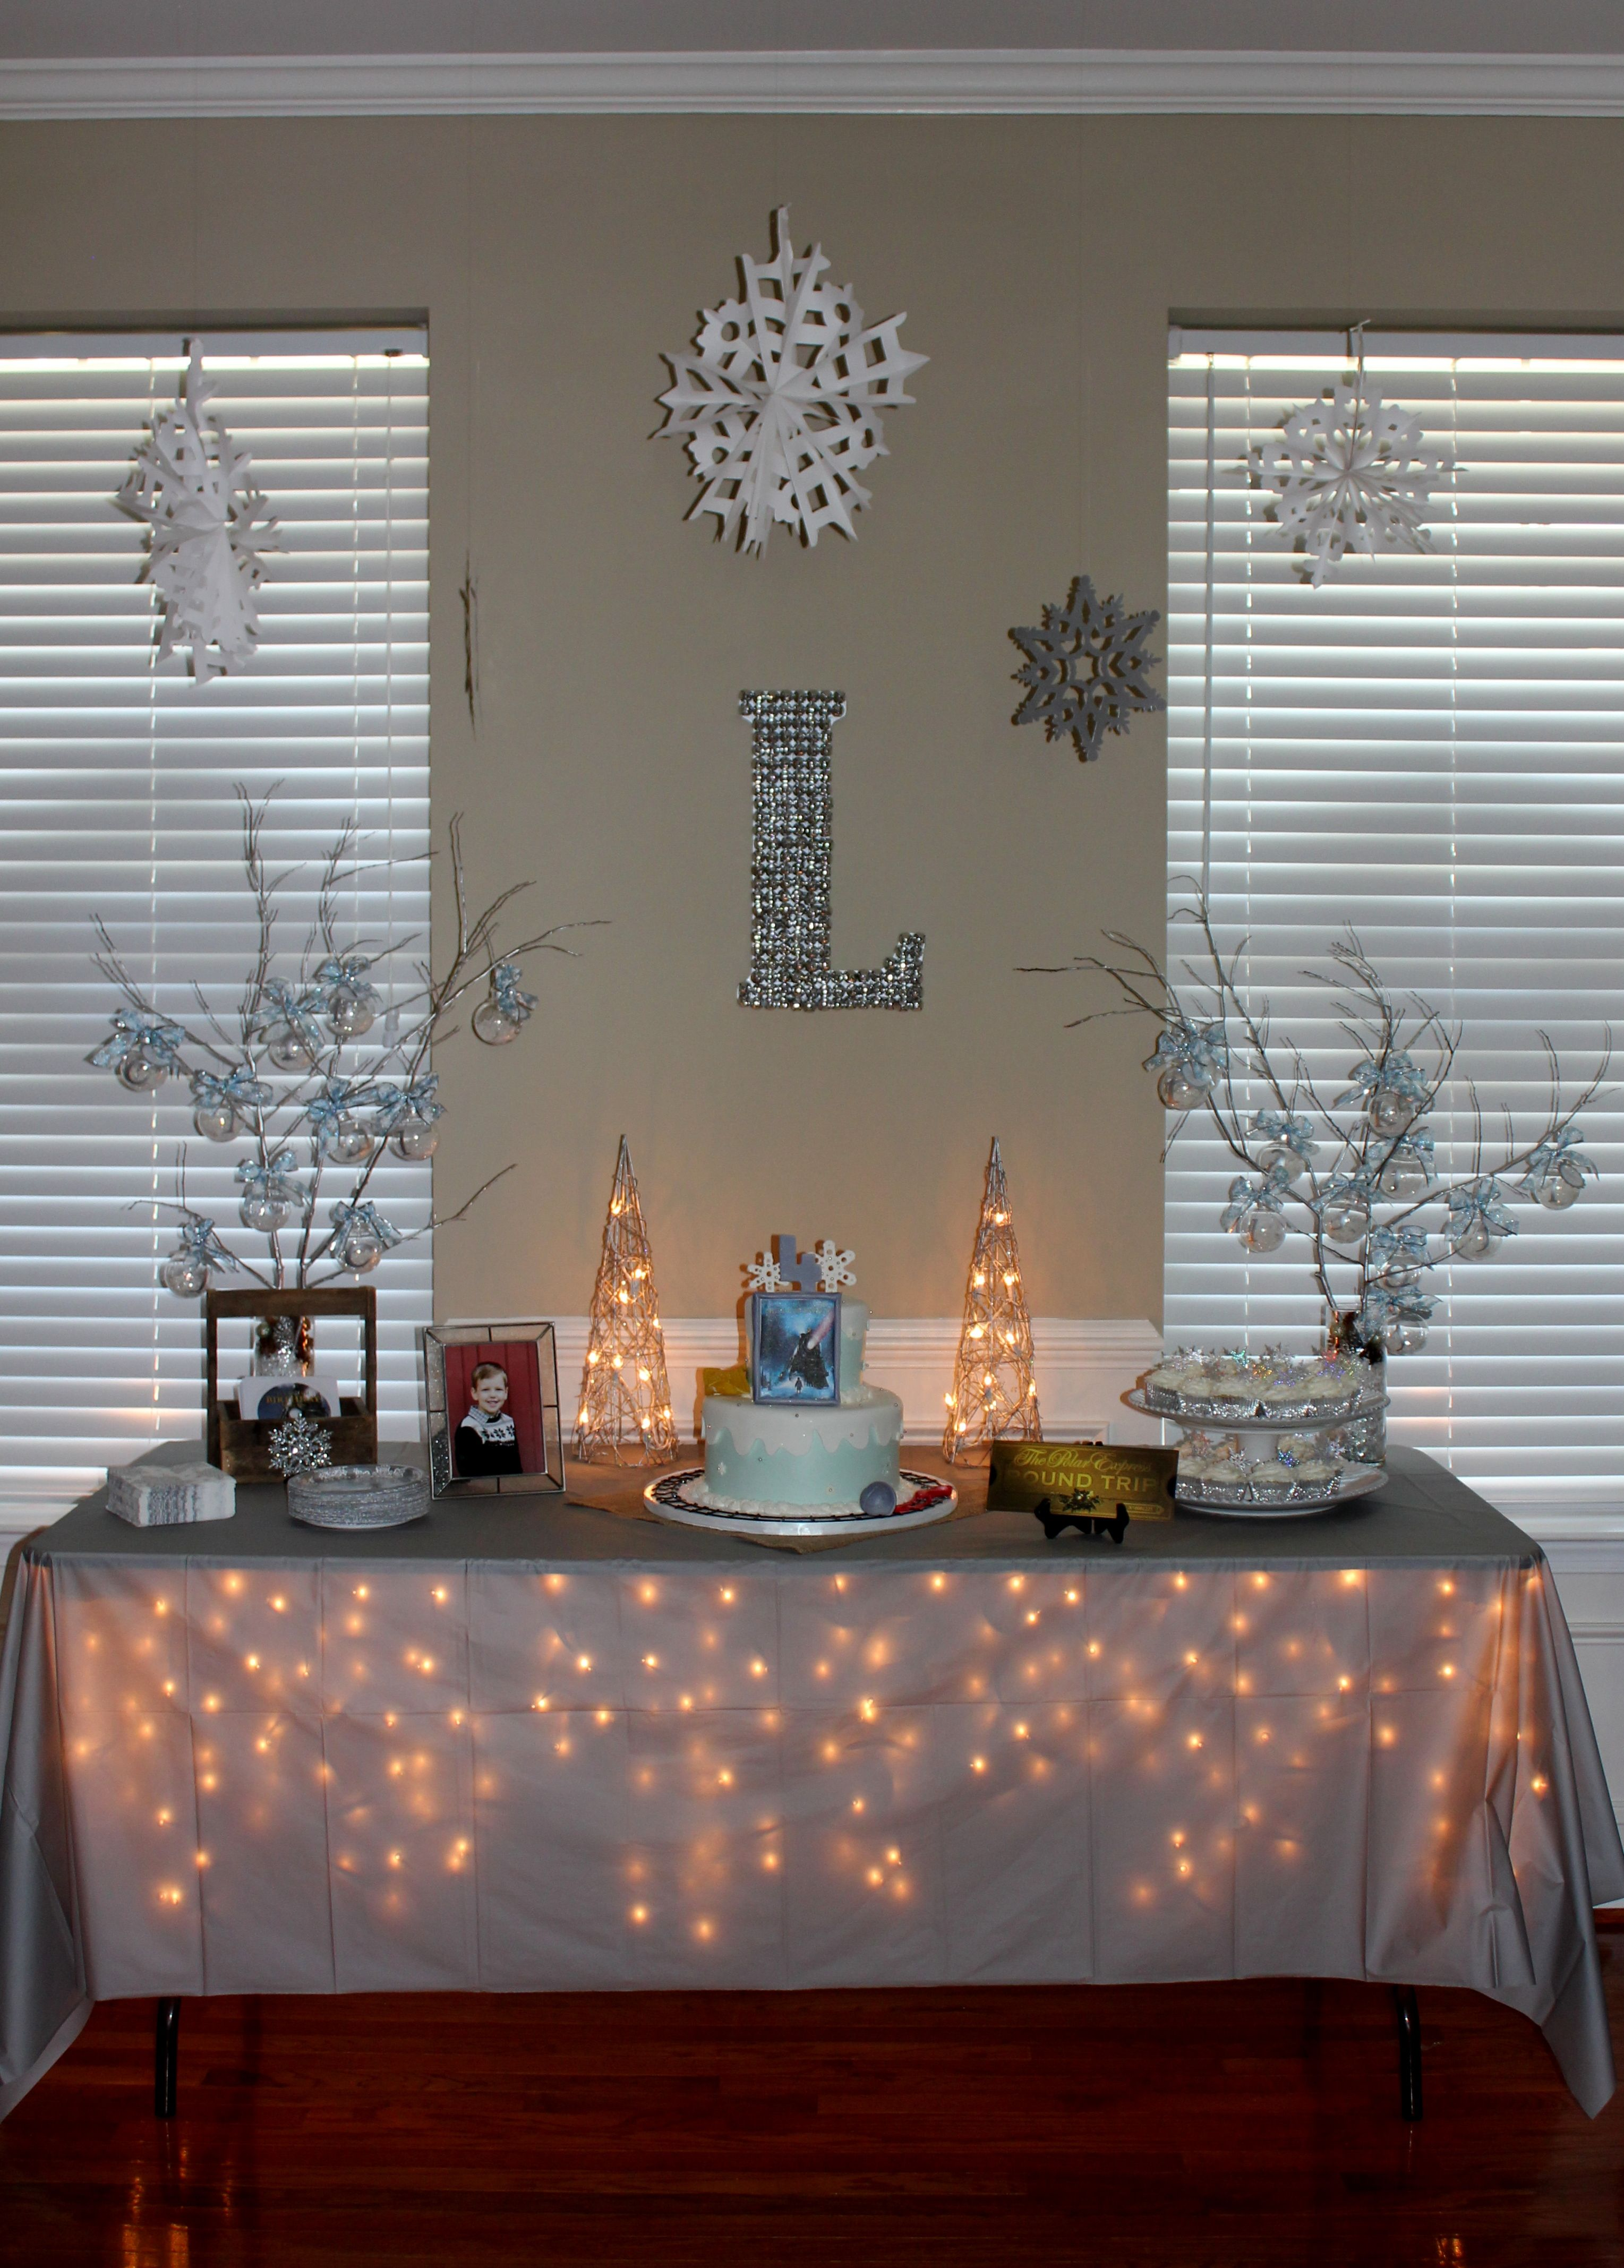 light how indoor bedroom compact walmart indoors tile lights to download brown it on lighting hang xmas curtain hazard target for fire white is cheap fairy living icicle string wall in safe leave outdoor room all are christmas novelty night